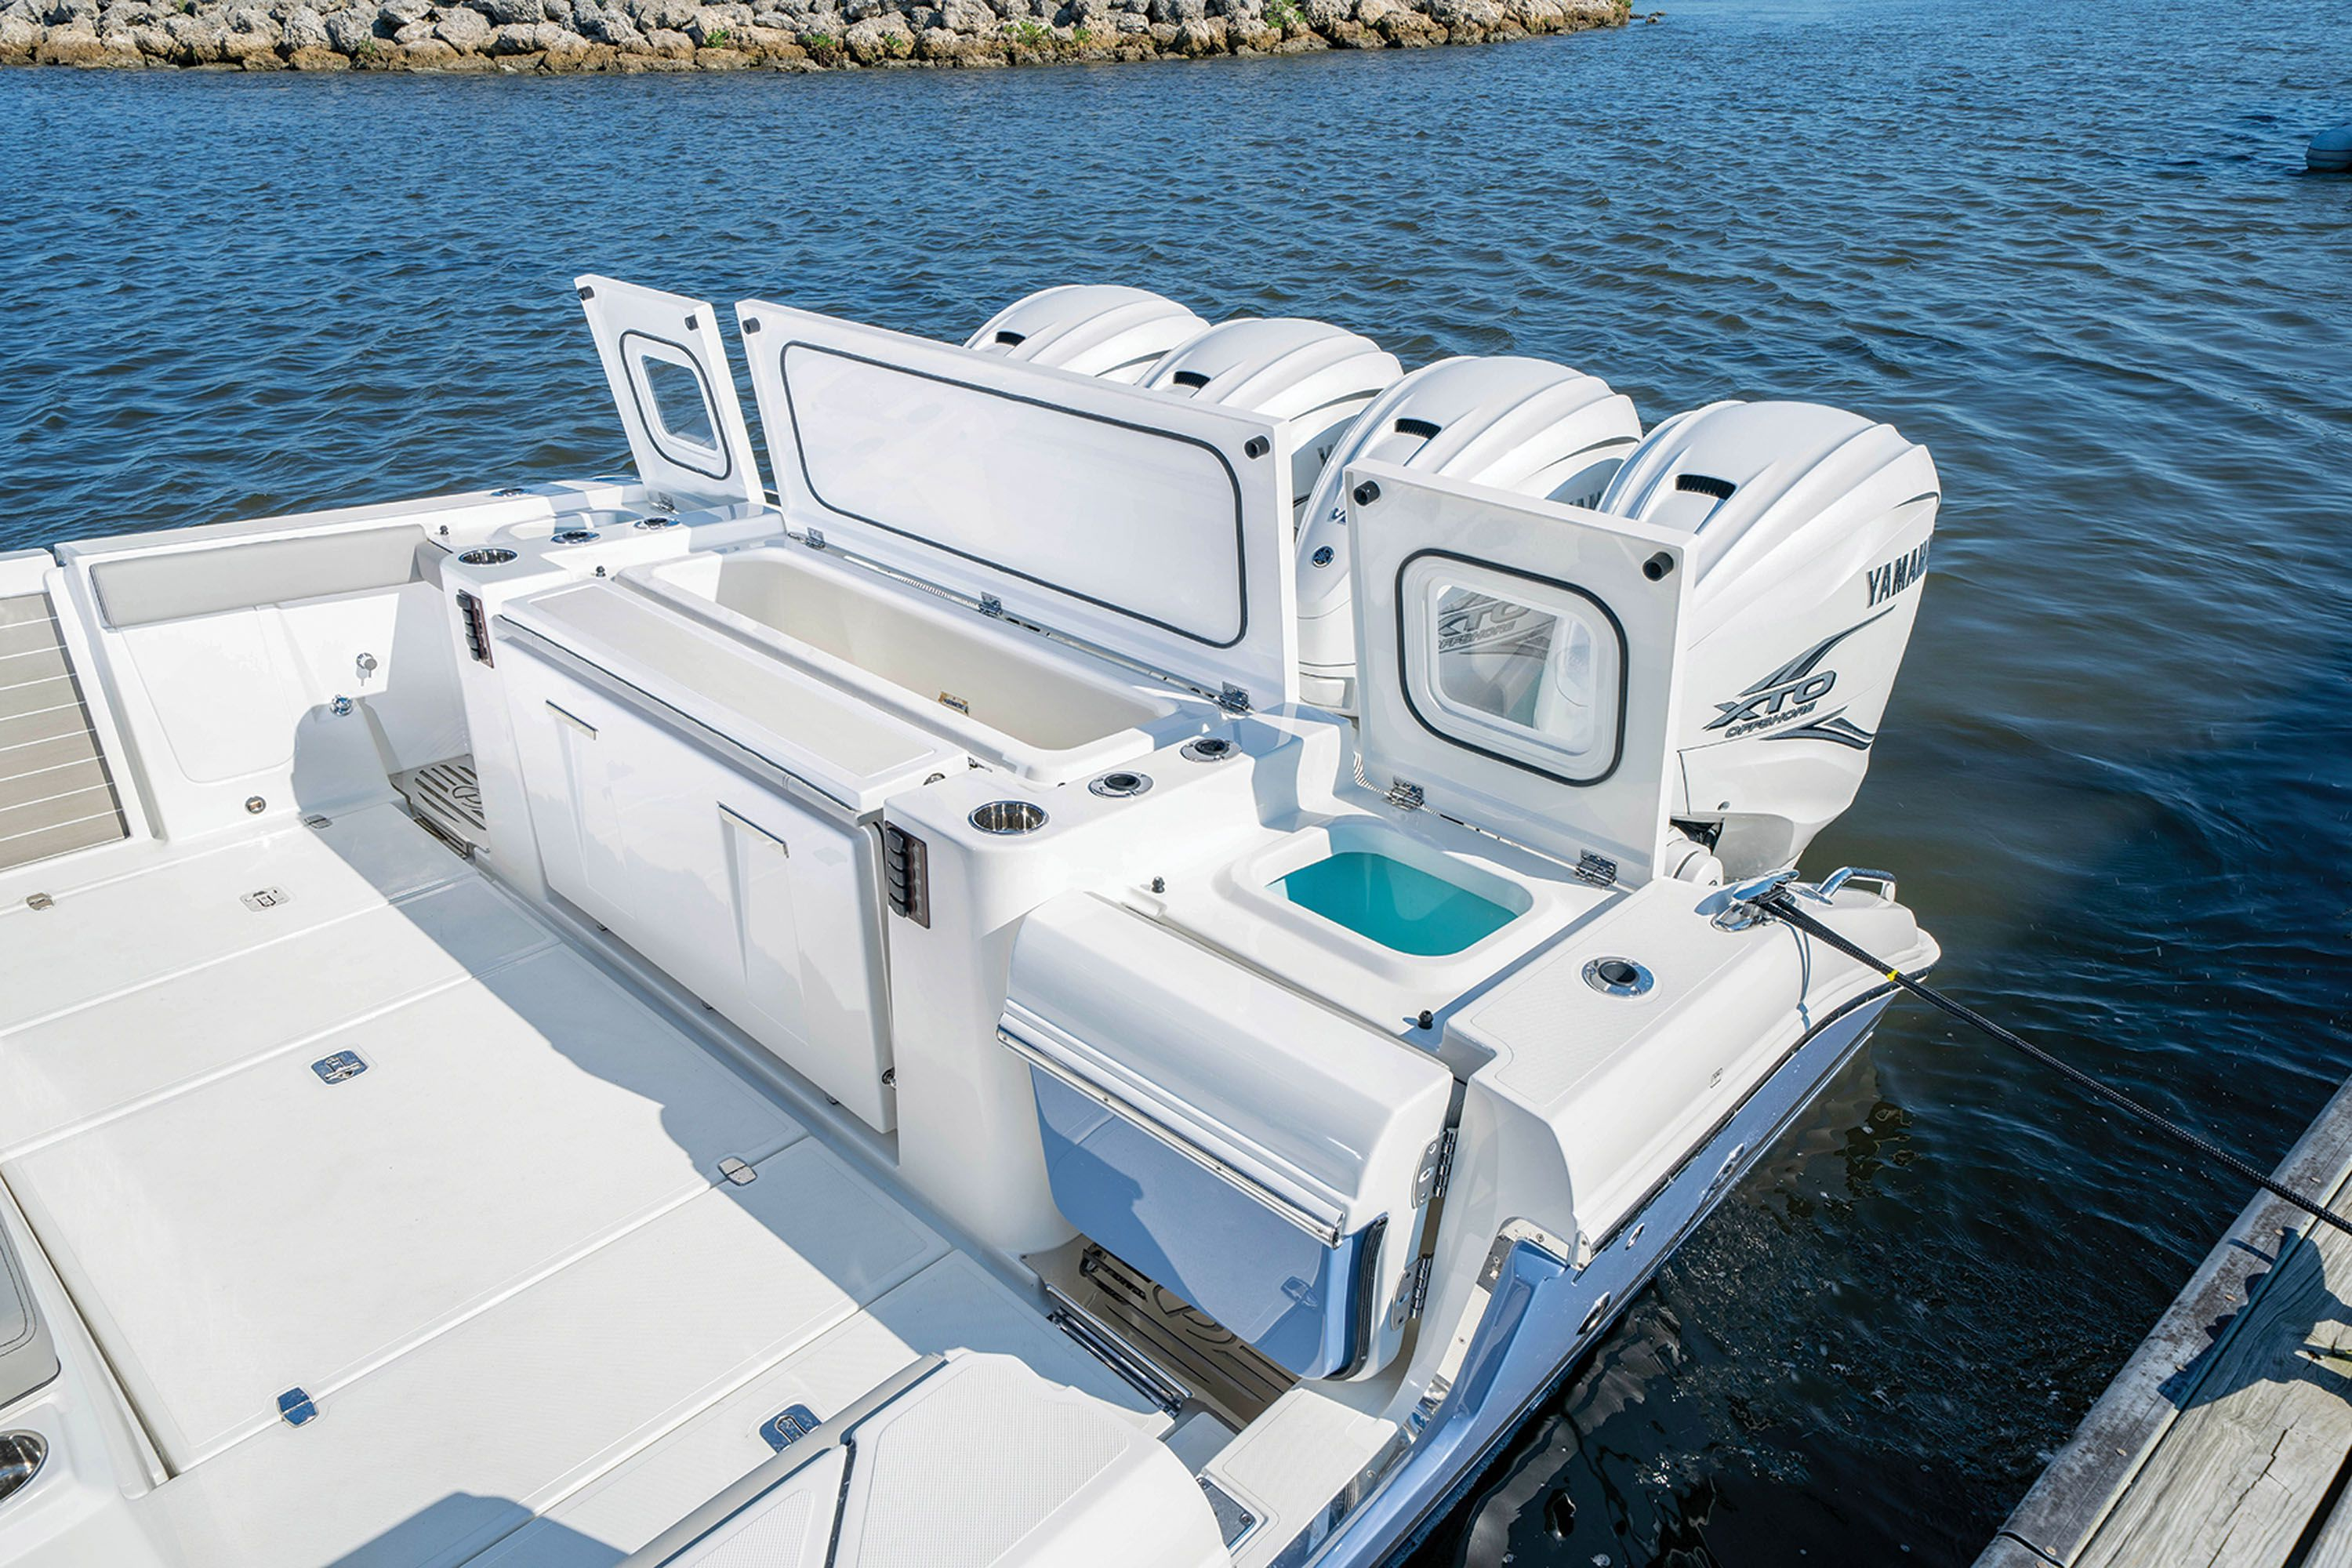 Twin 36-gallon livewells on the transom bookend a 68-gallon refrigerated fish box.